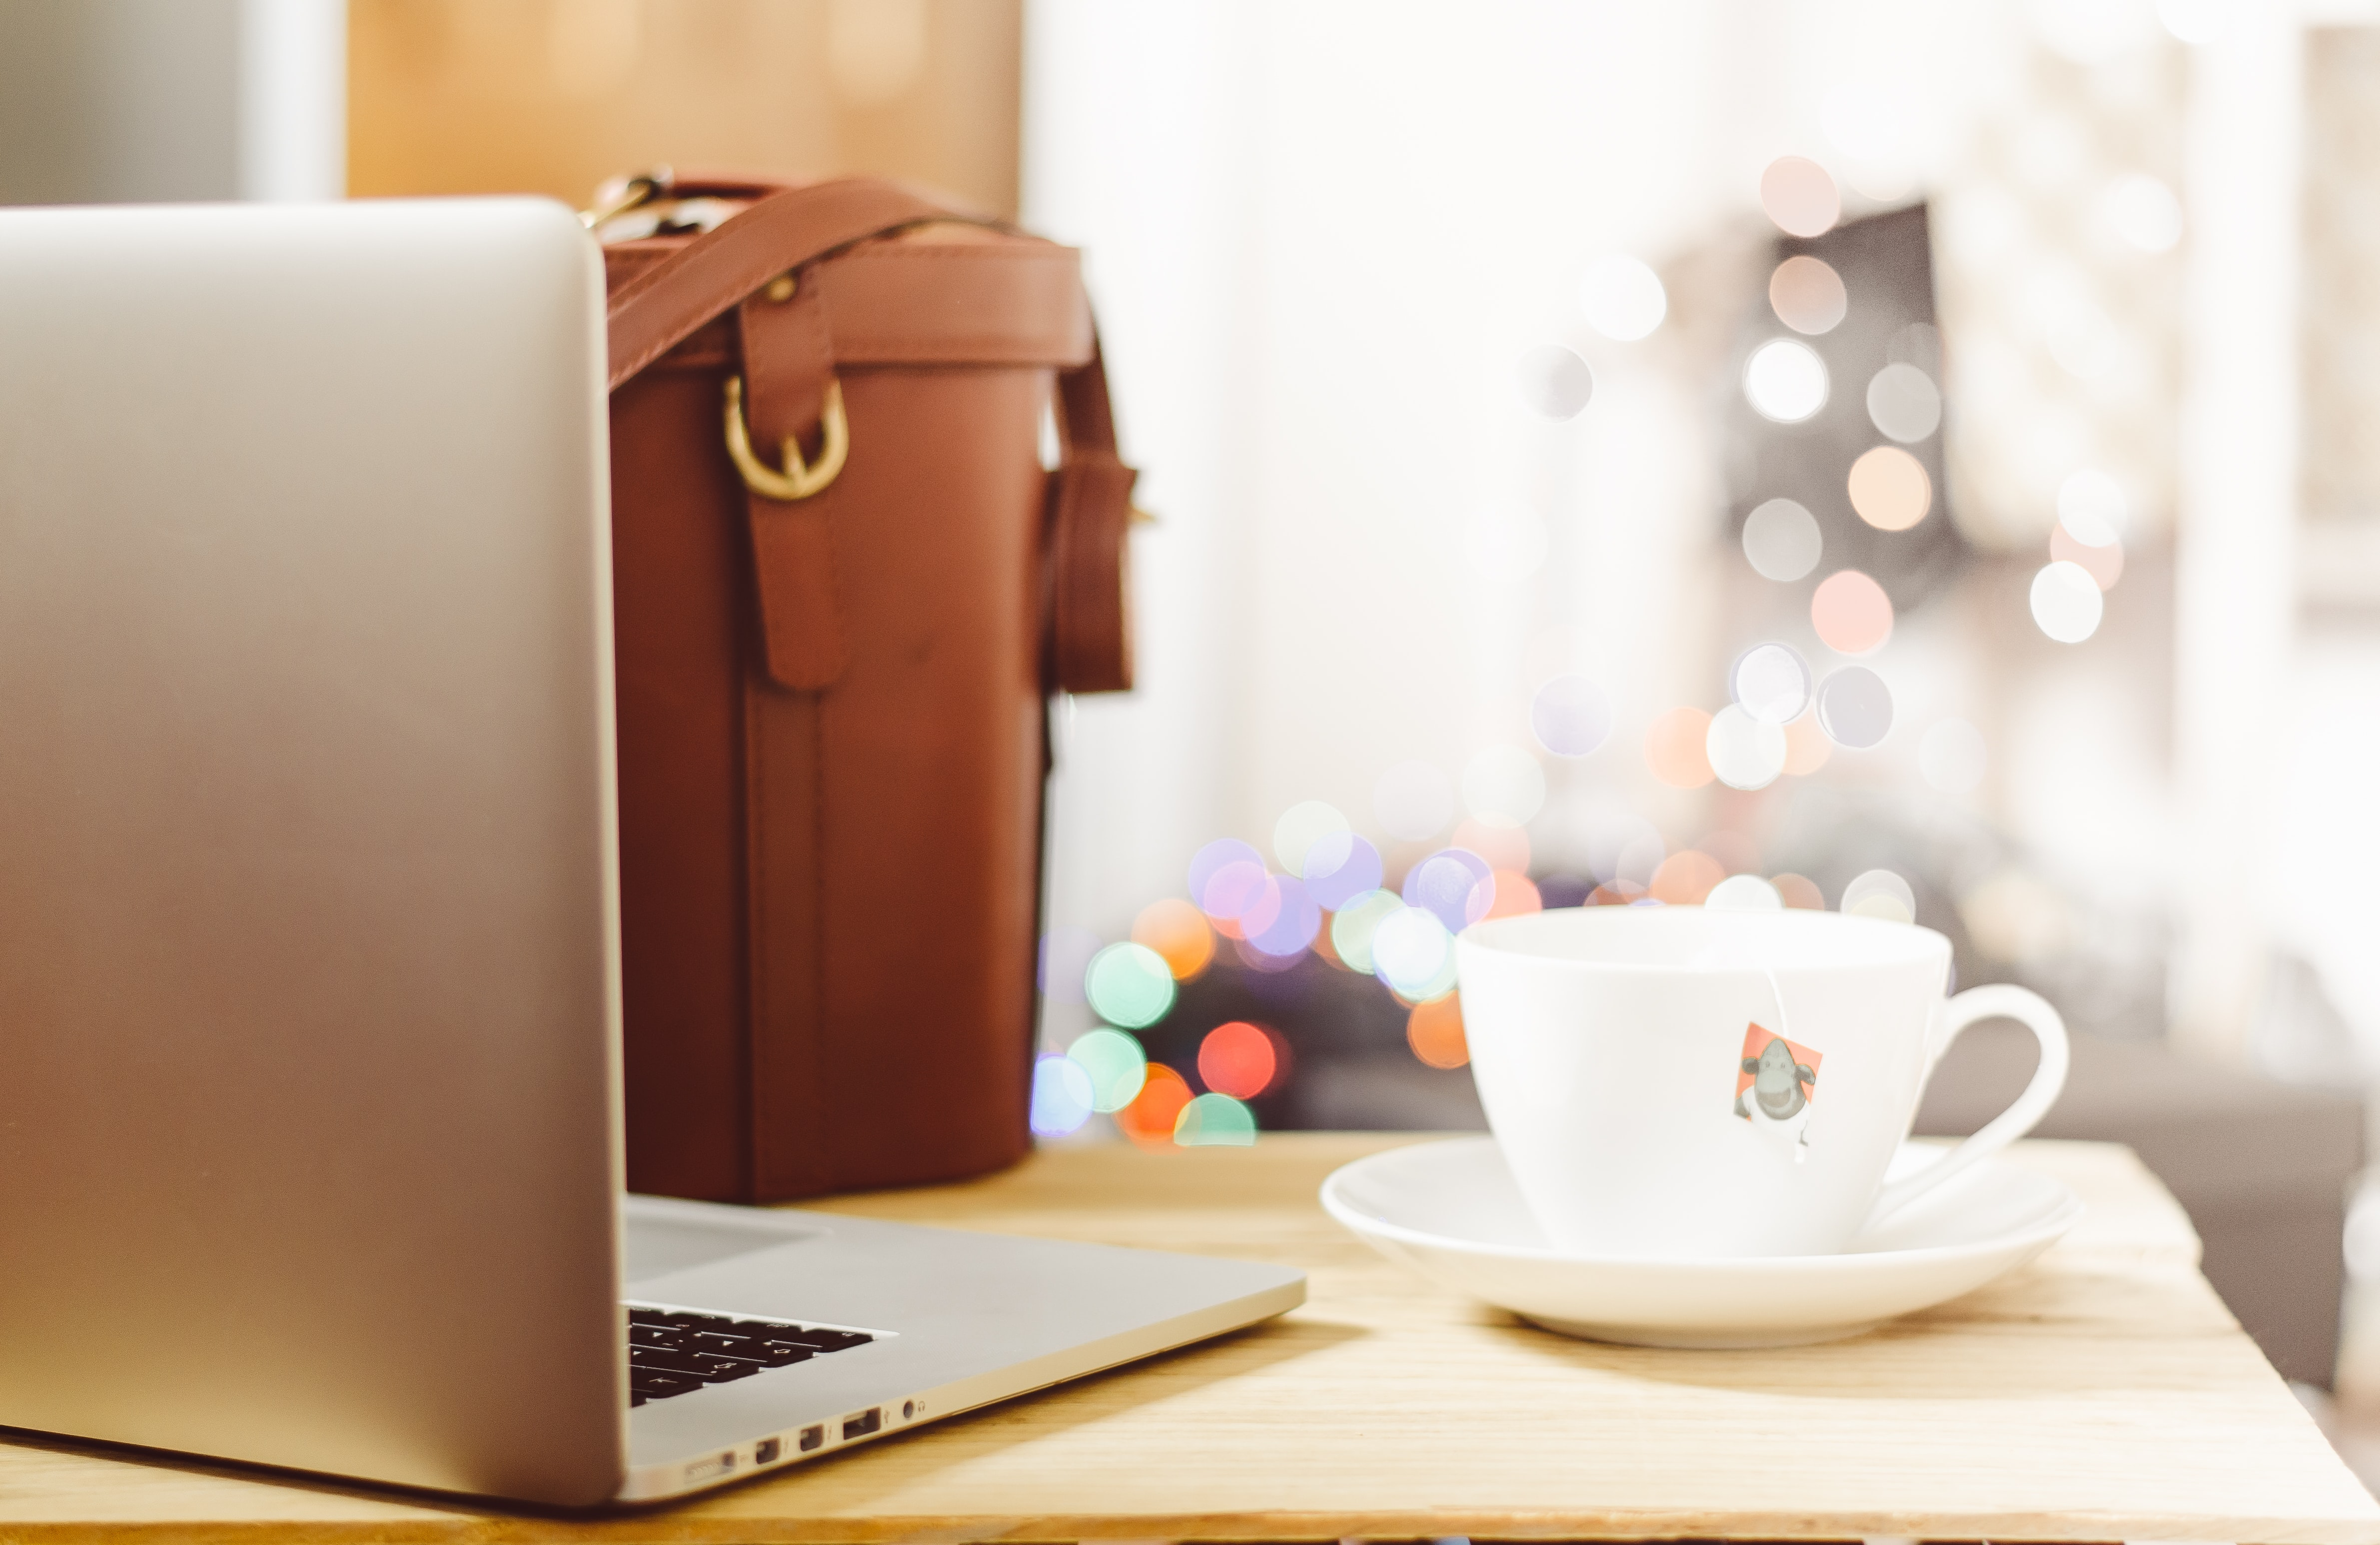 gray laptop beside teacup and bg